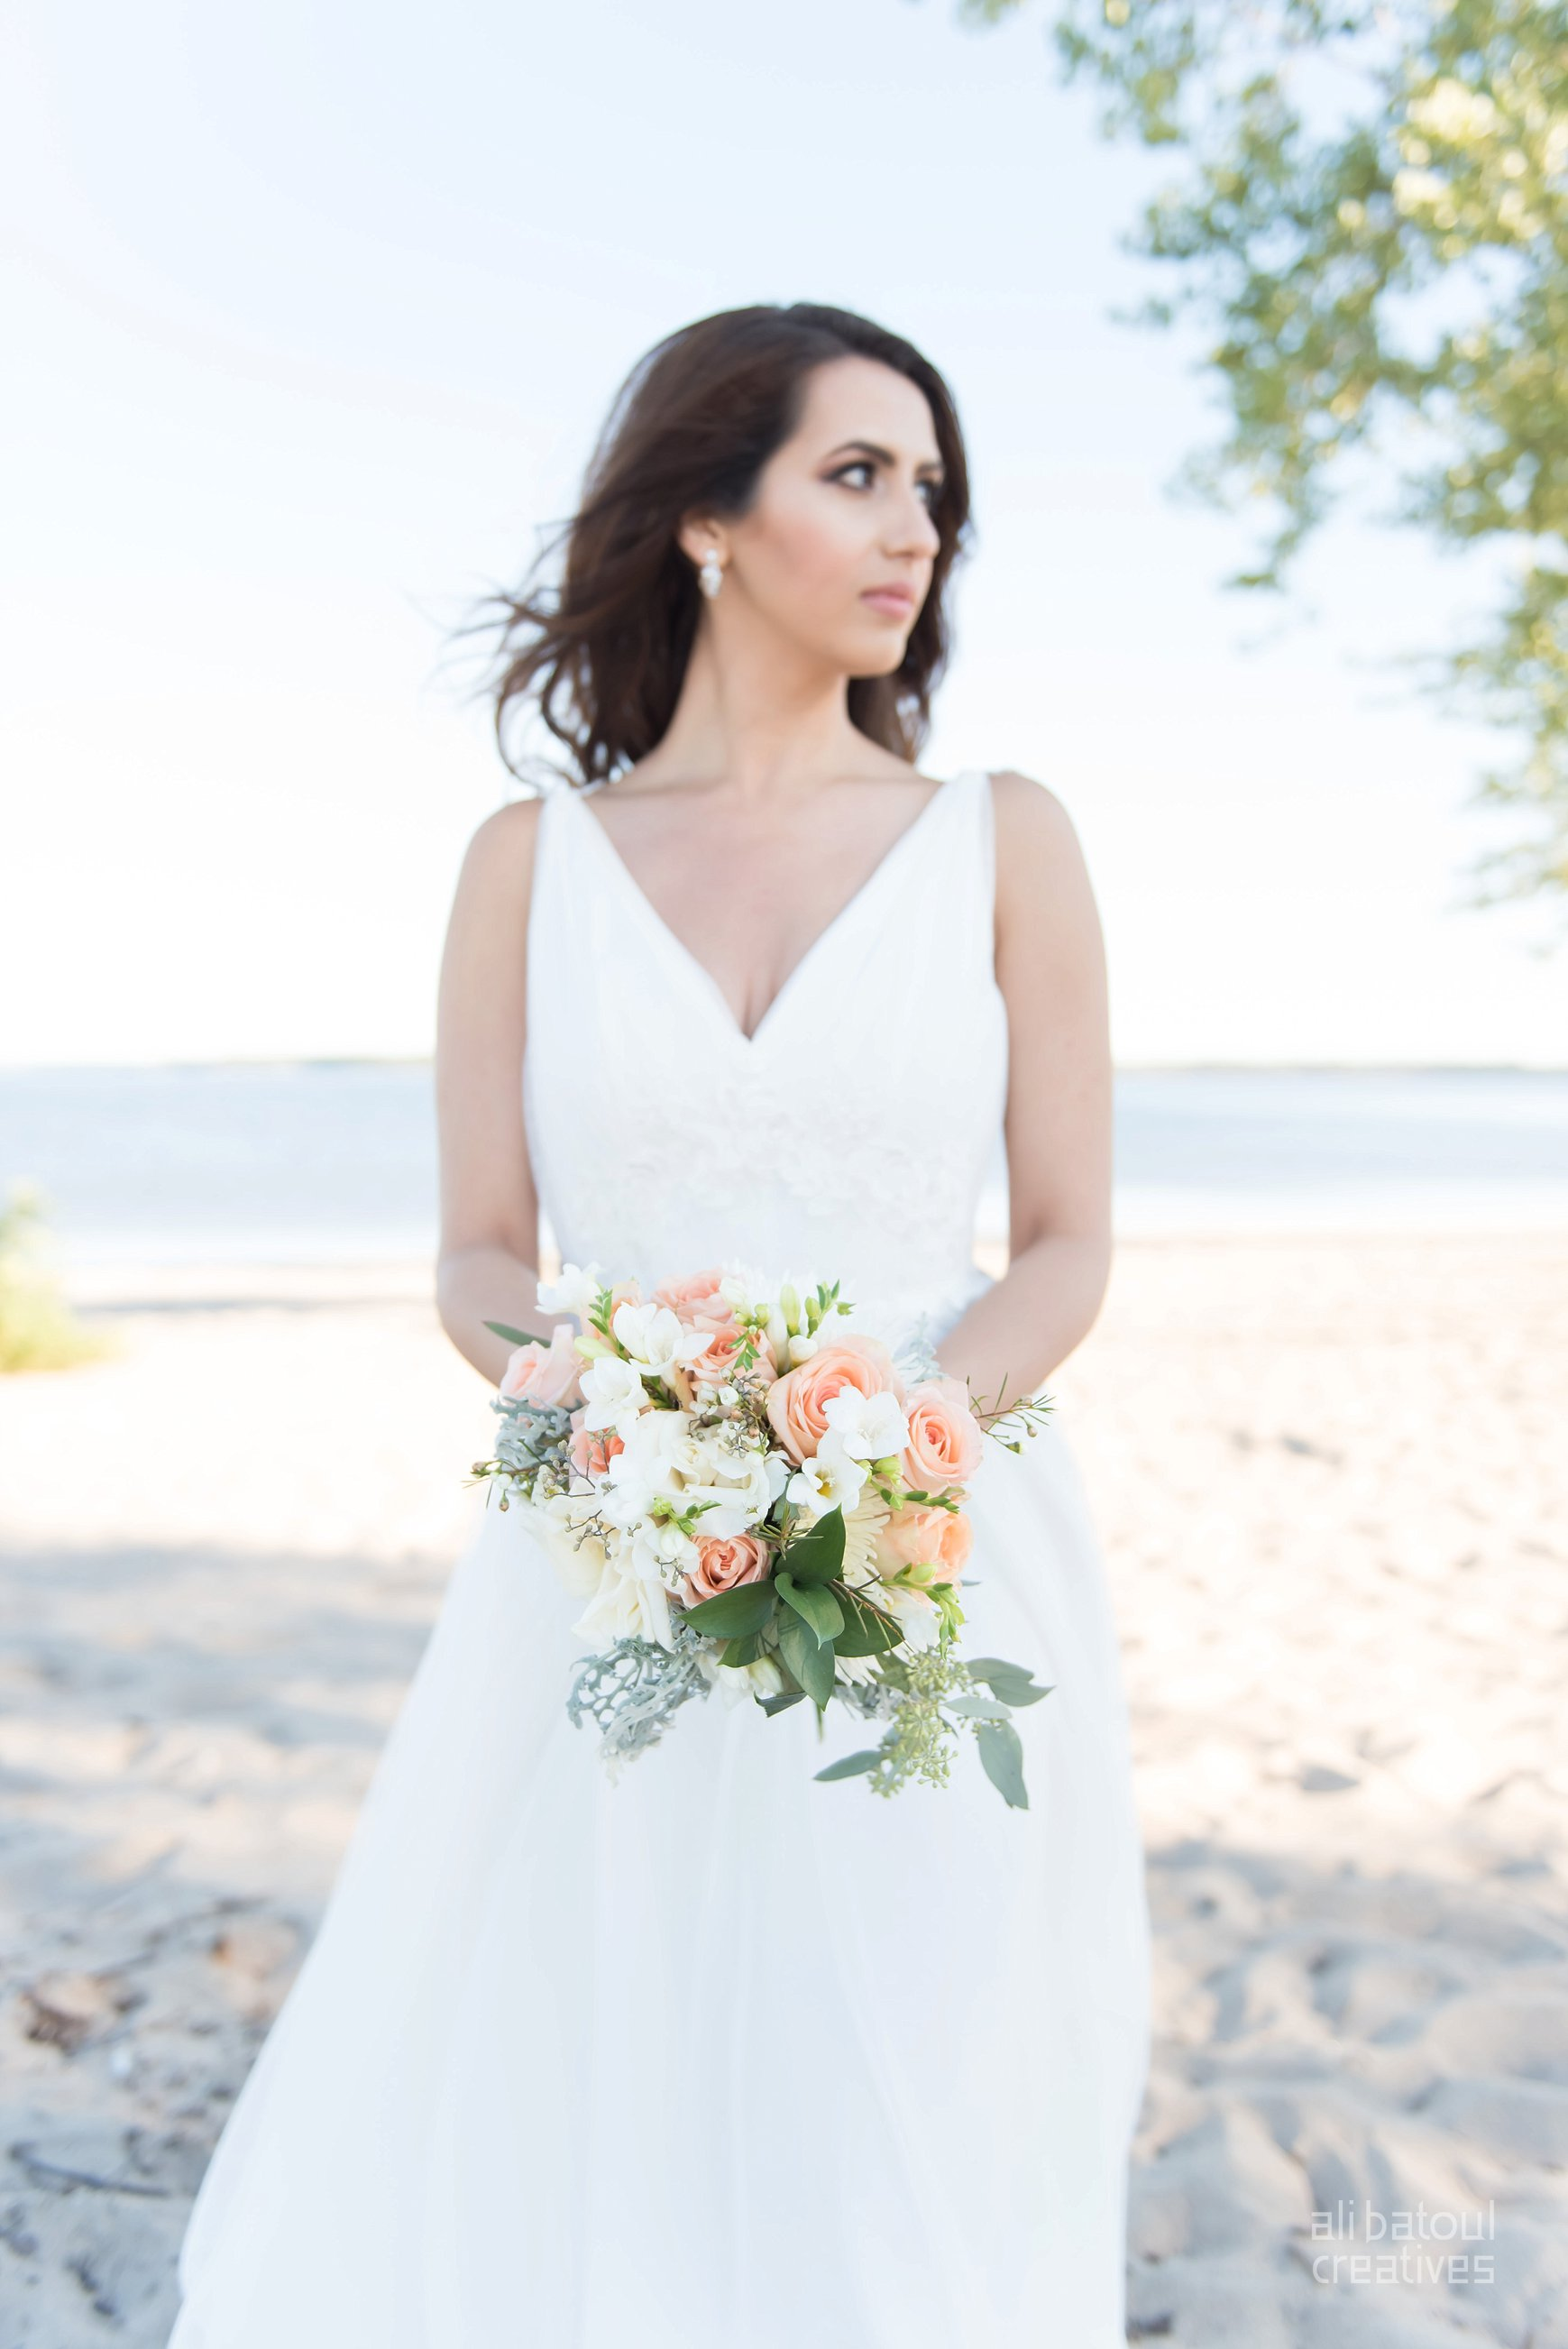 Alaa + Jad - Ottawa Beach Bridal Shoot (Ali Batoul Creatives)-35_Stomped.jpg